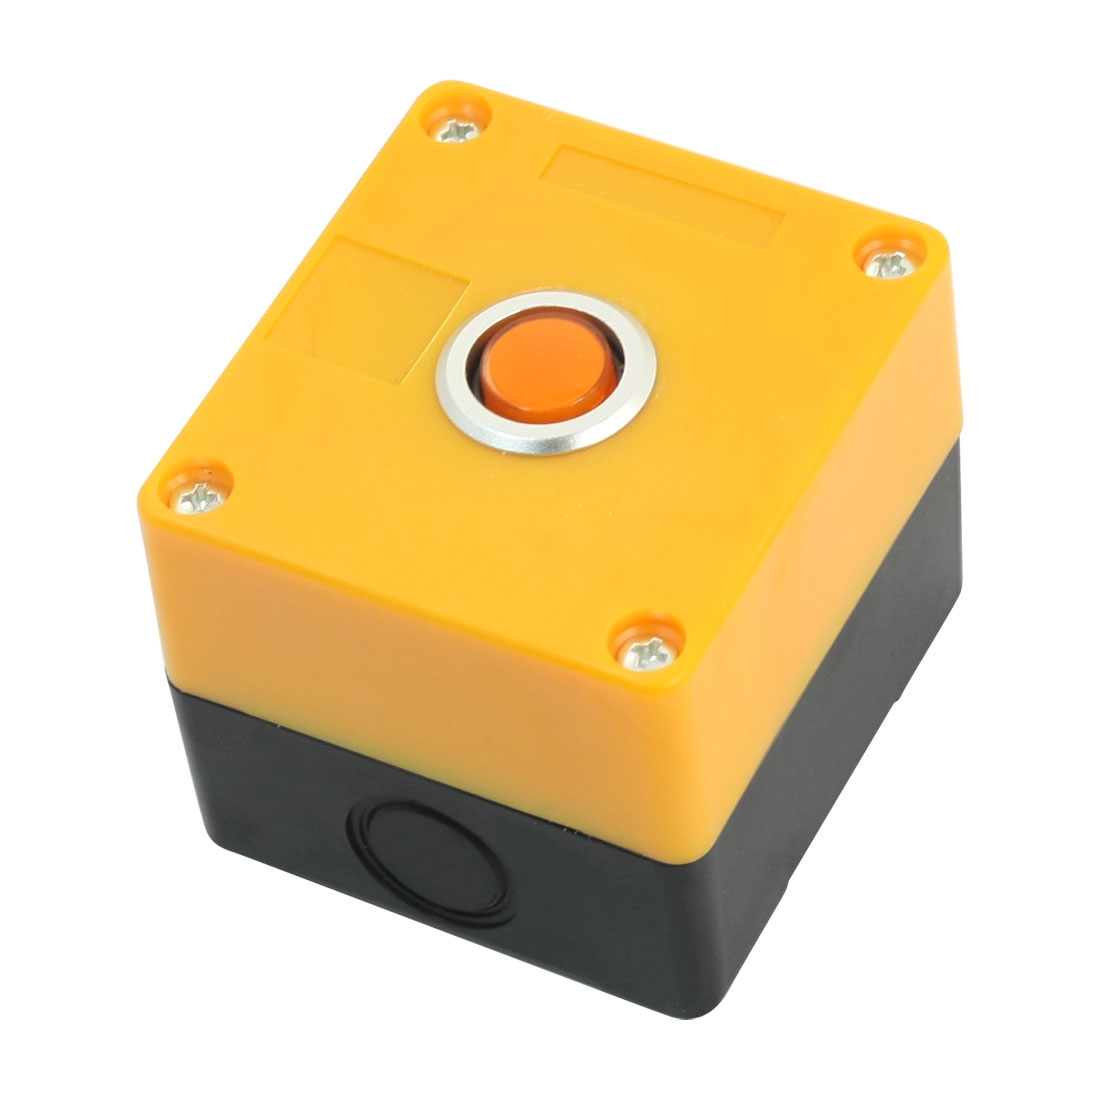 24V 15mm Dia Round Button Rectangle Plastic Case Orange Accident Signal Indicator Light Pilot Lamp Bulb w Protector Box